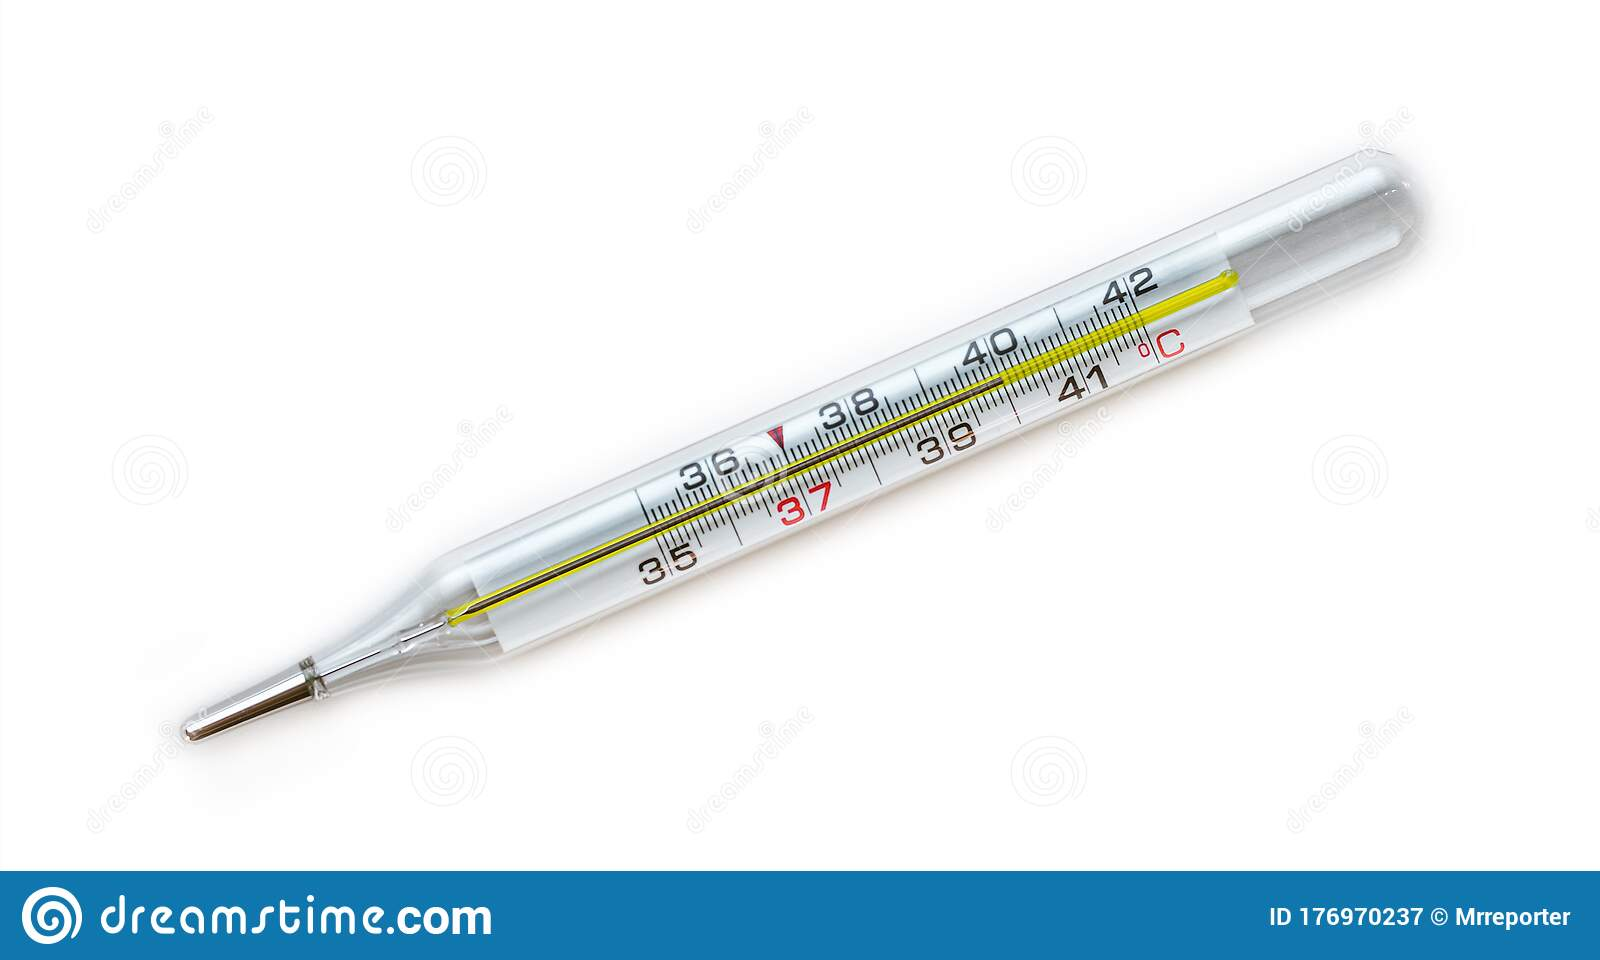 Classic Body Thermometer Indicating A Temperature Of 40